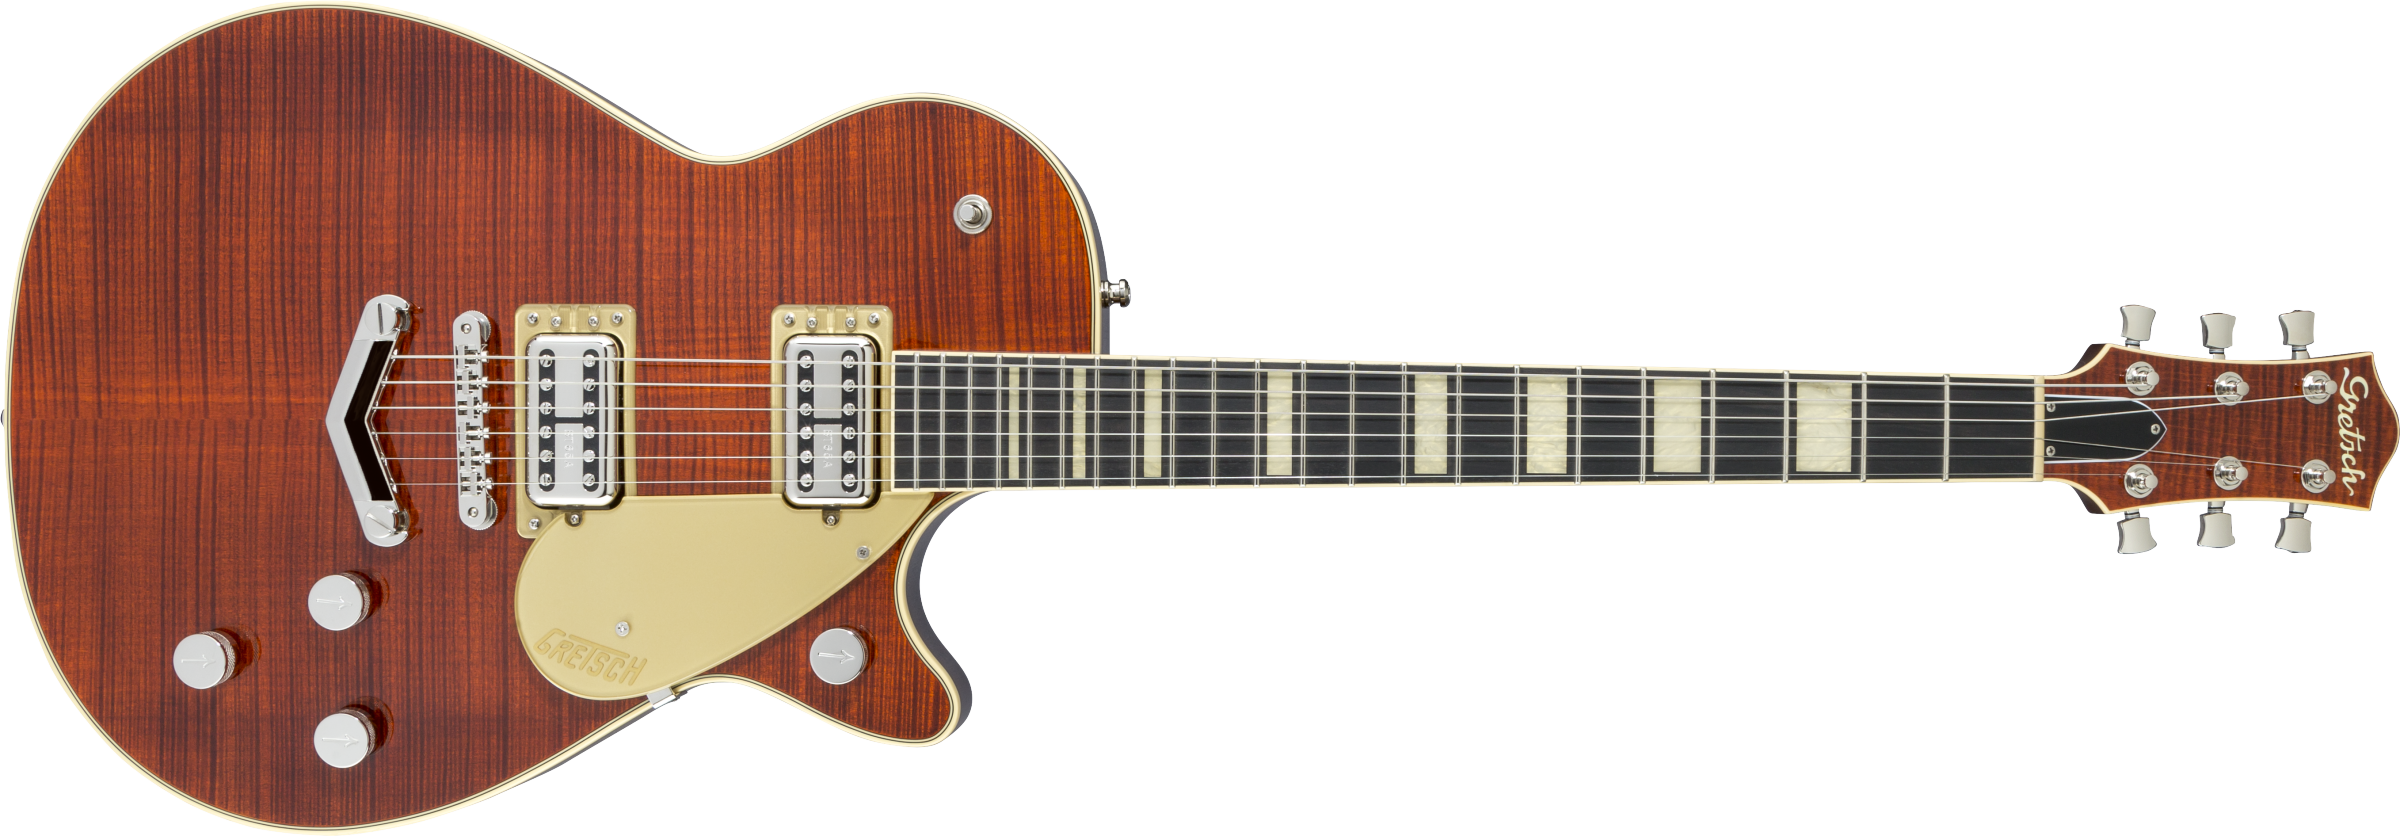 GRETSCH-G6228FM-Players-Edition-Jet-BT-with-V-Stoptail-and-Flame-Maple-Ebony-Fingerboard-Bourbon-Stain-sku-571001725